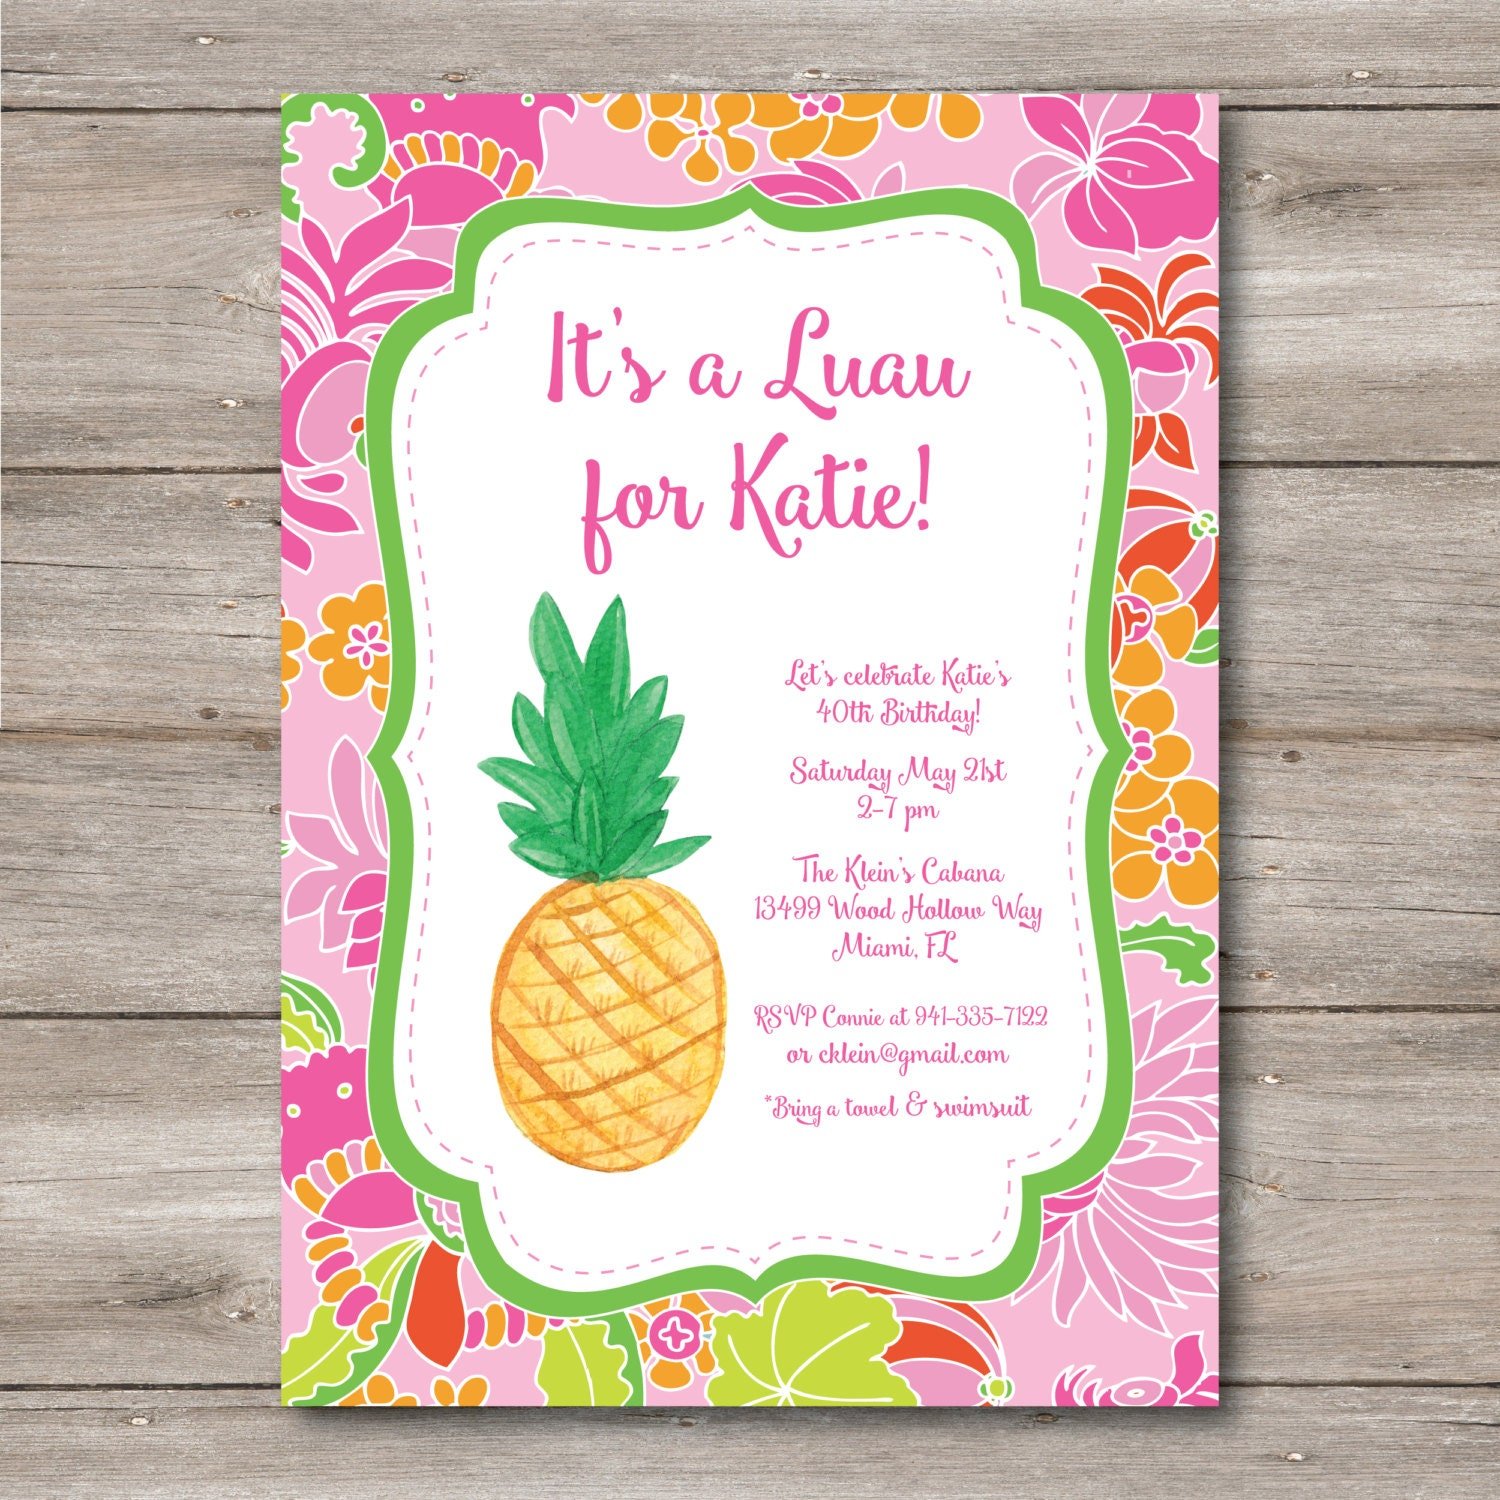 luau party invite  etsy, invitation samples